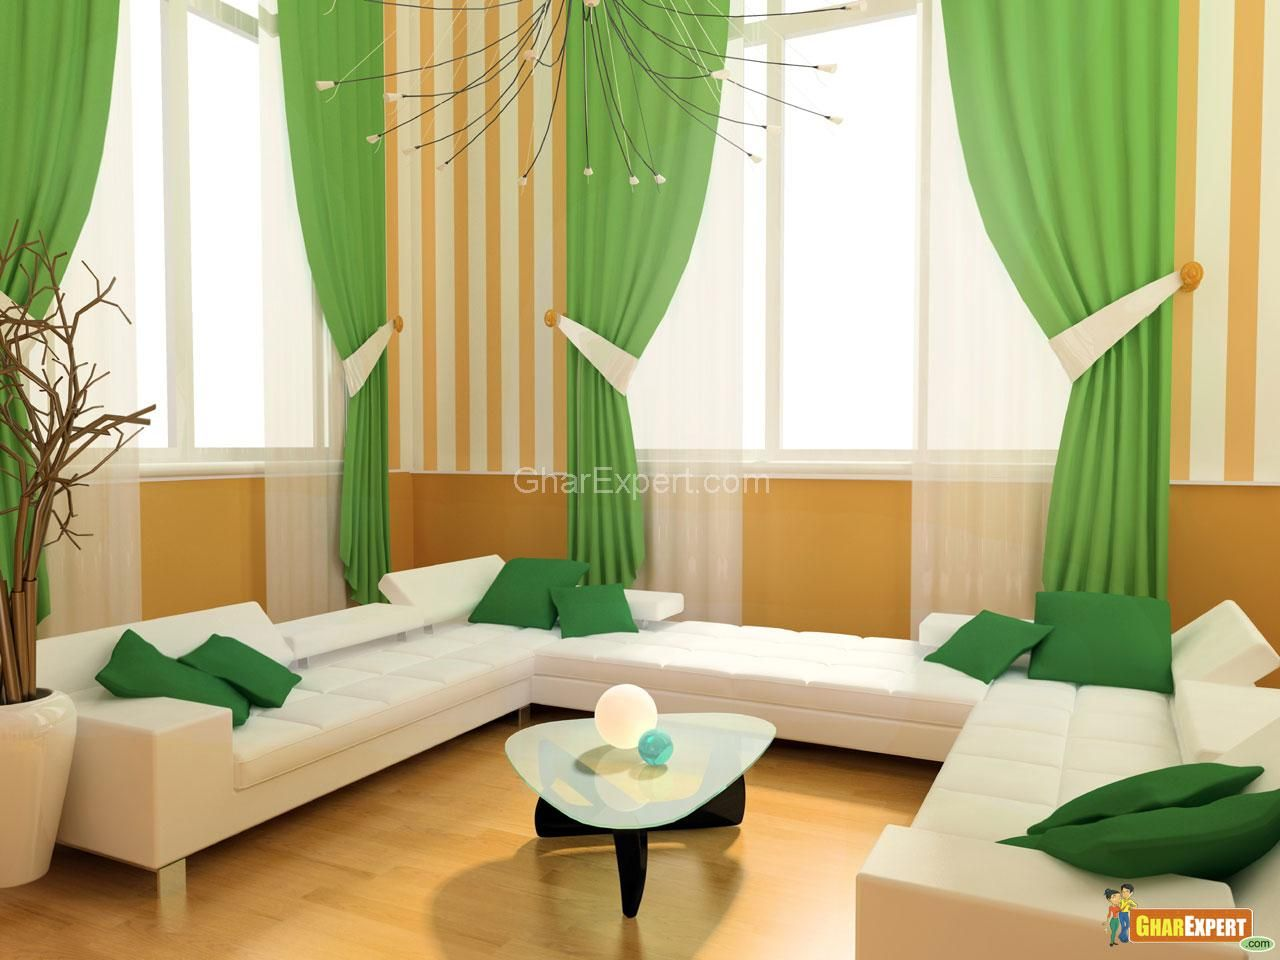 Curtains Designs For Living Room Delectable Greencurtaindesignsforlivingroomwindow  Curtains For Living Decorating Design